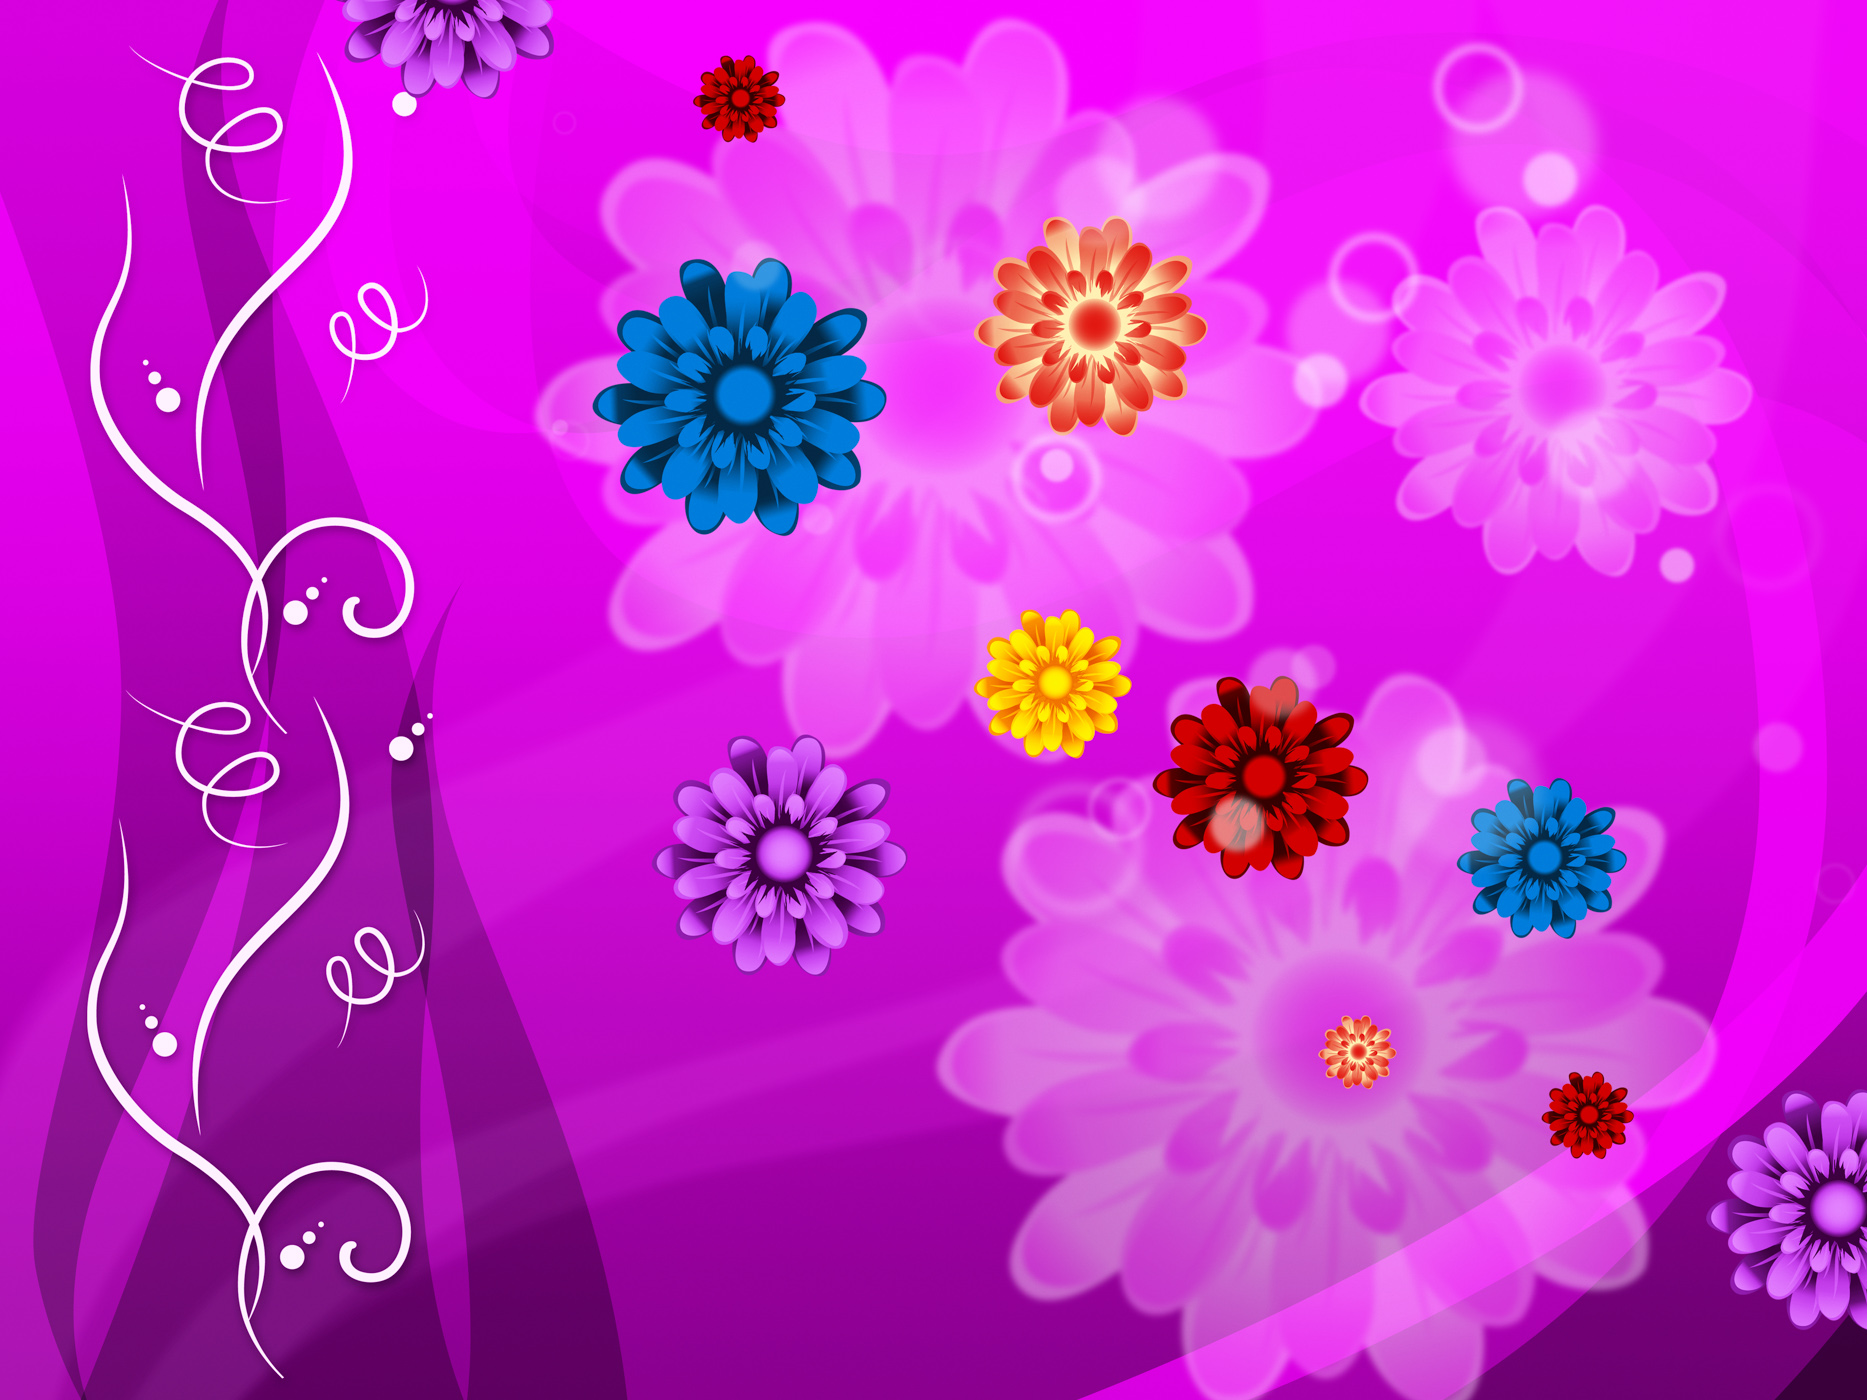 Free Photo Purple Floral Background Means Colorful Flowers And